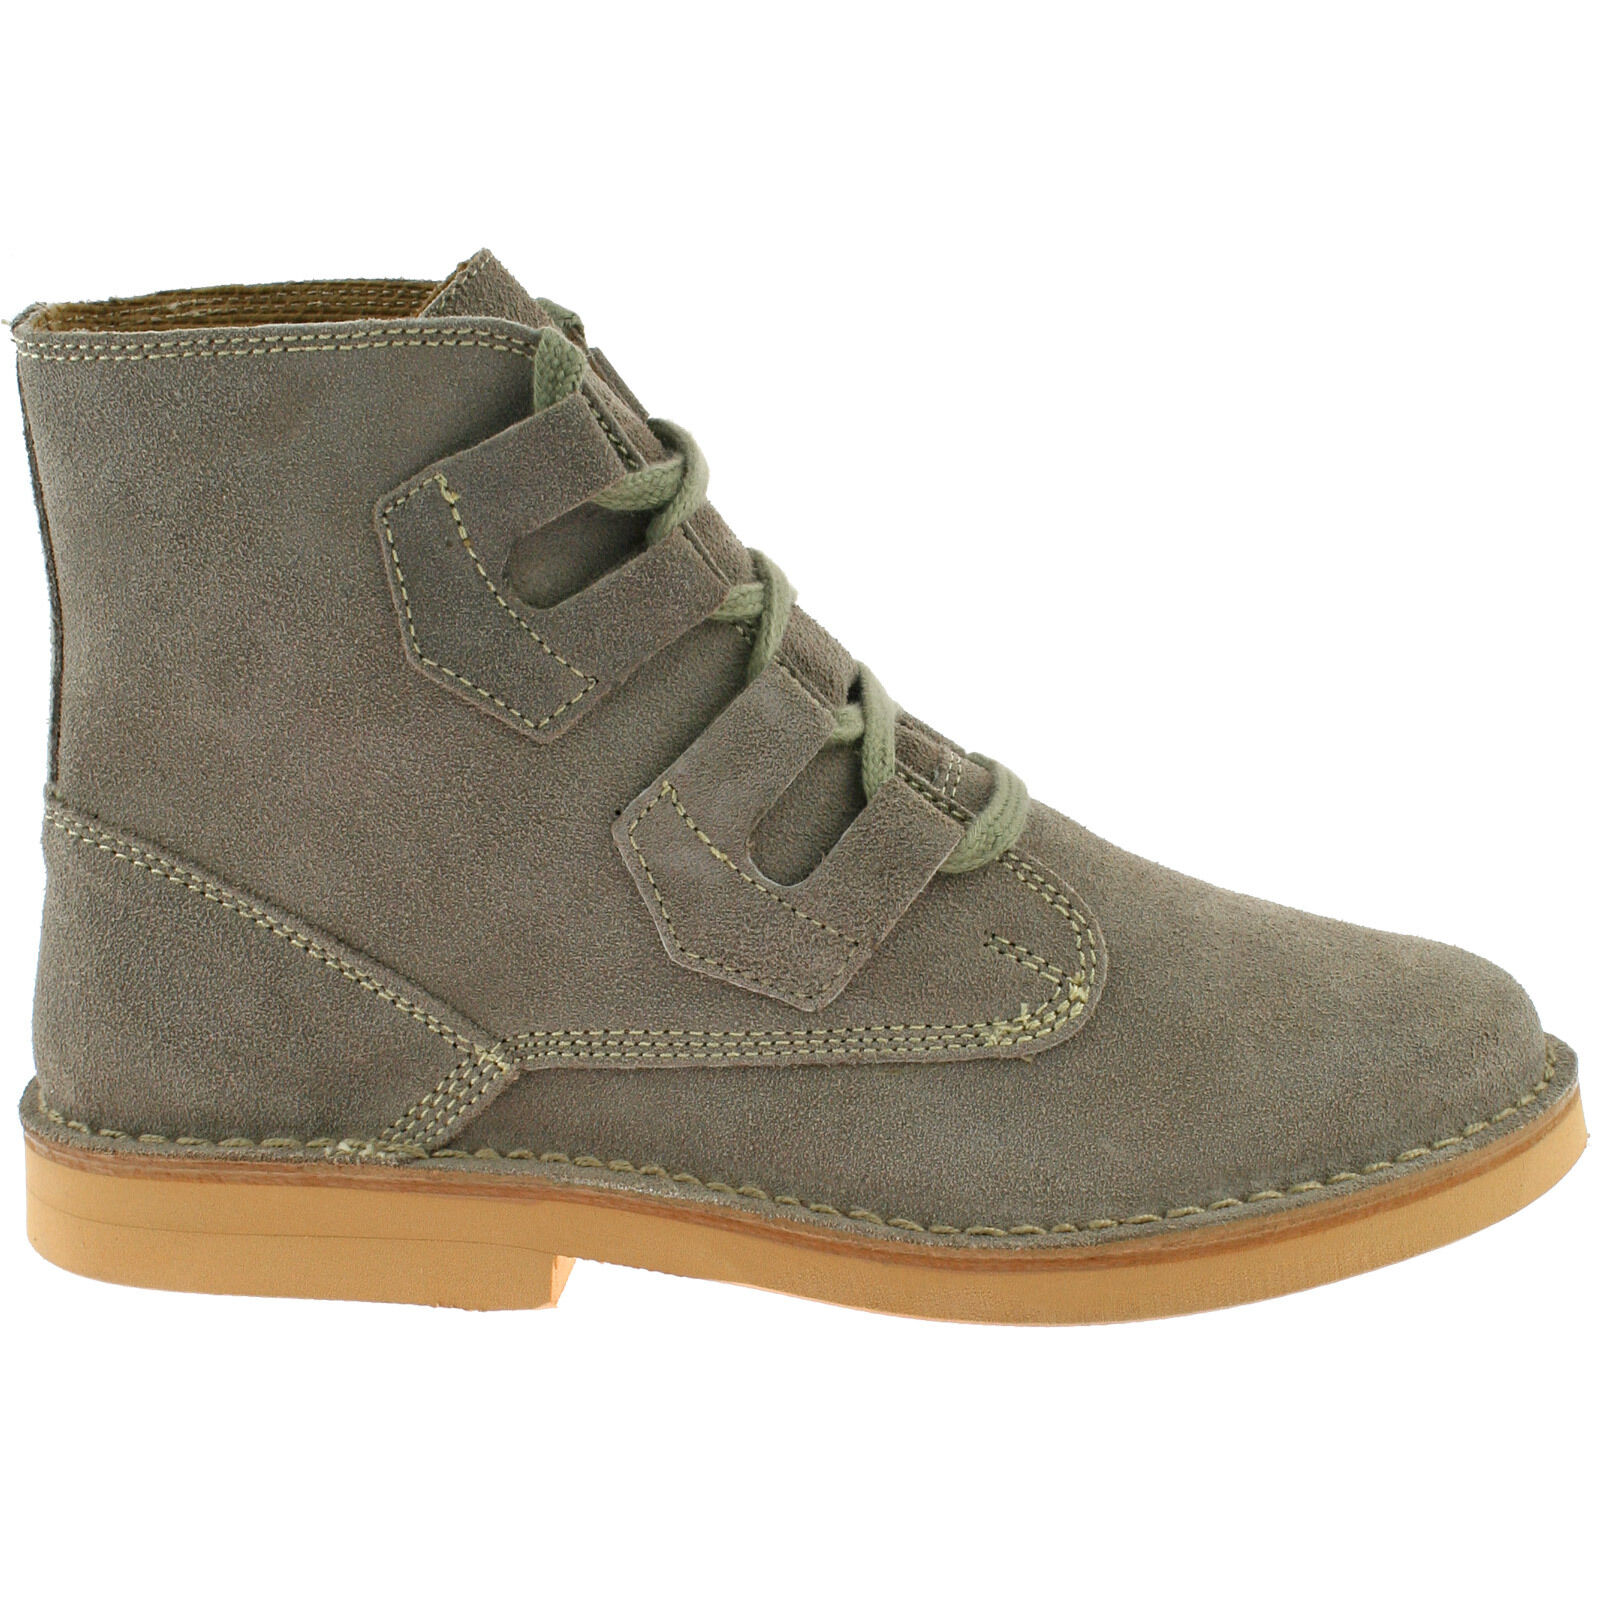 Roamers Ghillie lacets casual daim cuir homme chaussures desert bottes UK6-12